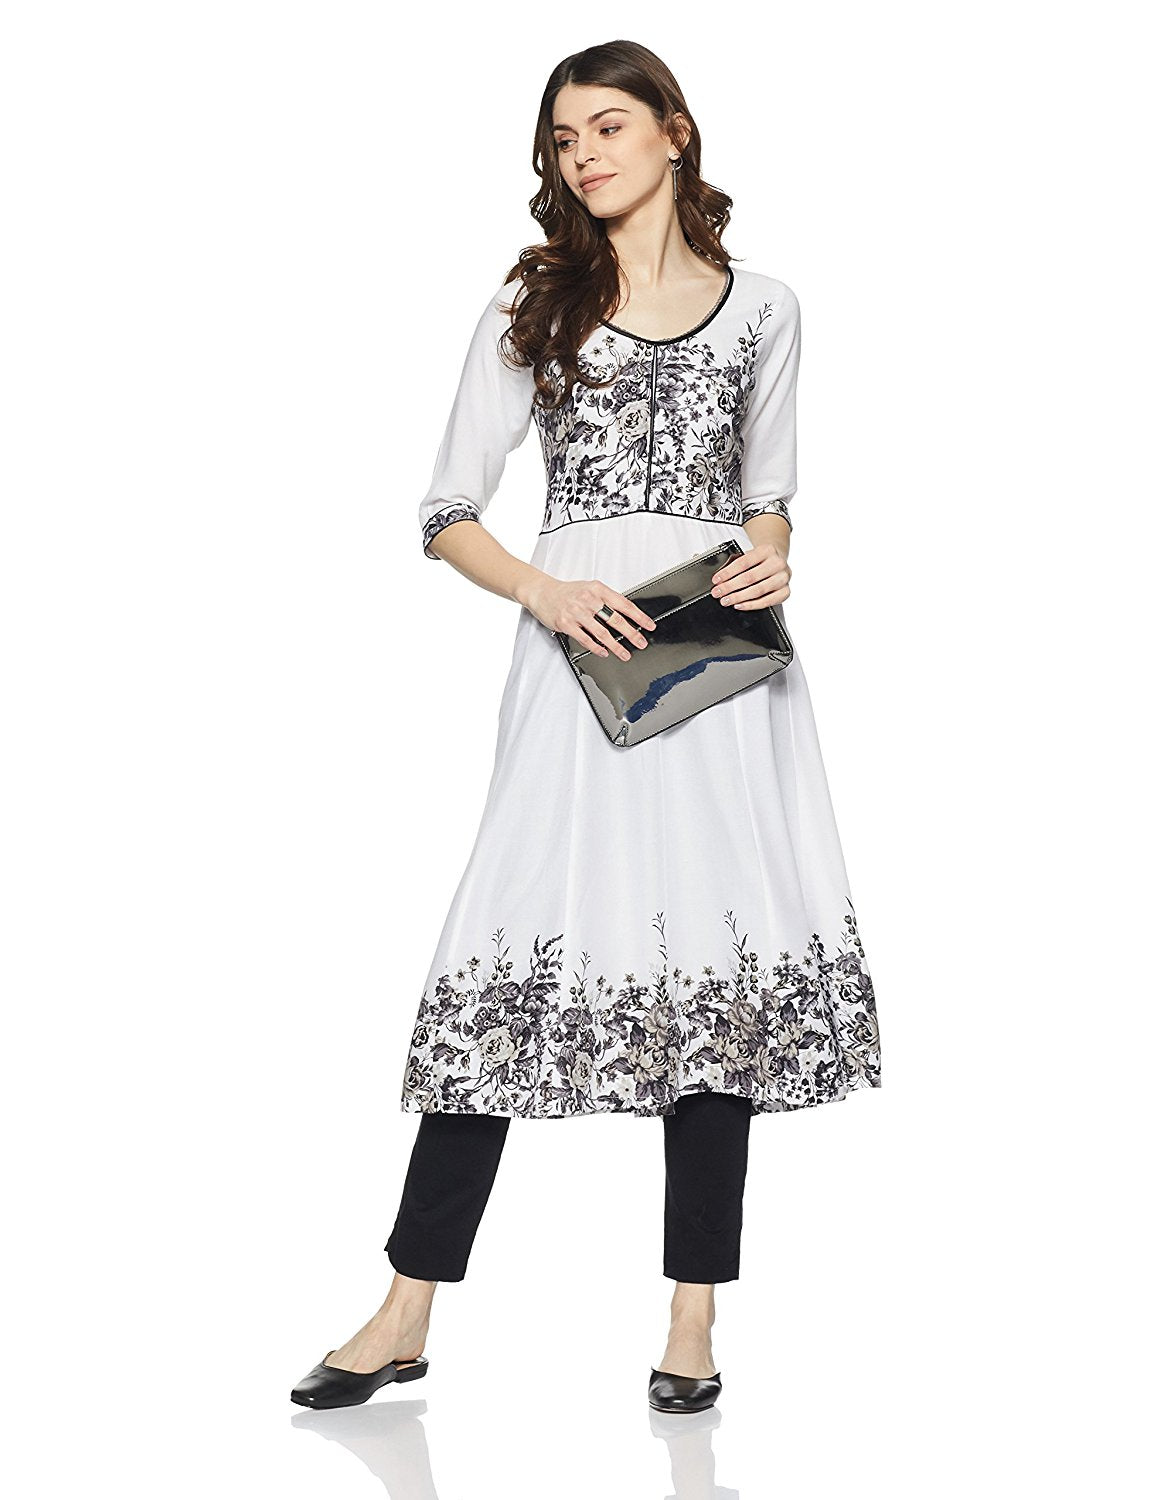 https://ladyindia.com/products/floral-print-long-anarkalis-floral-print-anarkali-cotton-kurta?variant=7877571870764